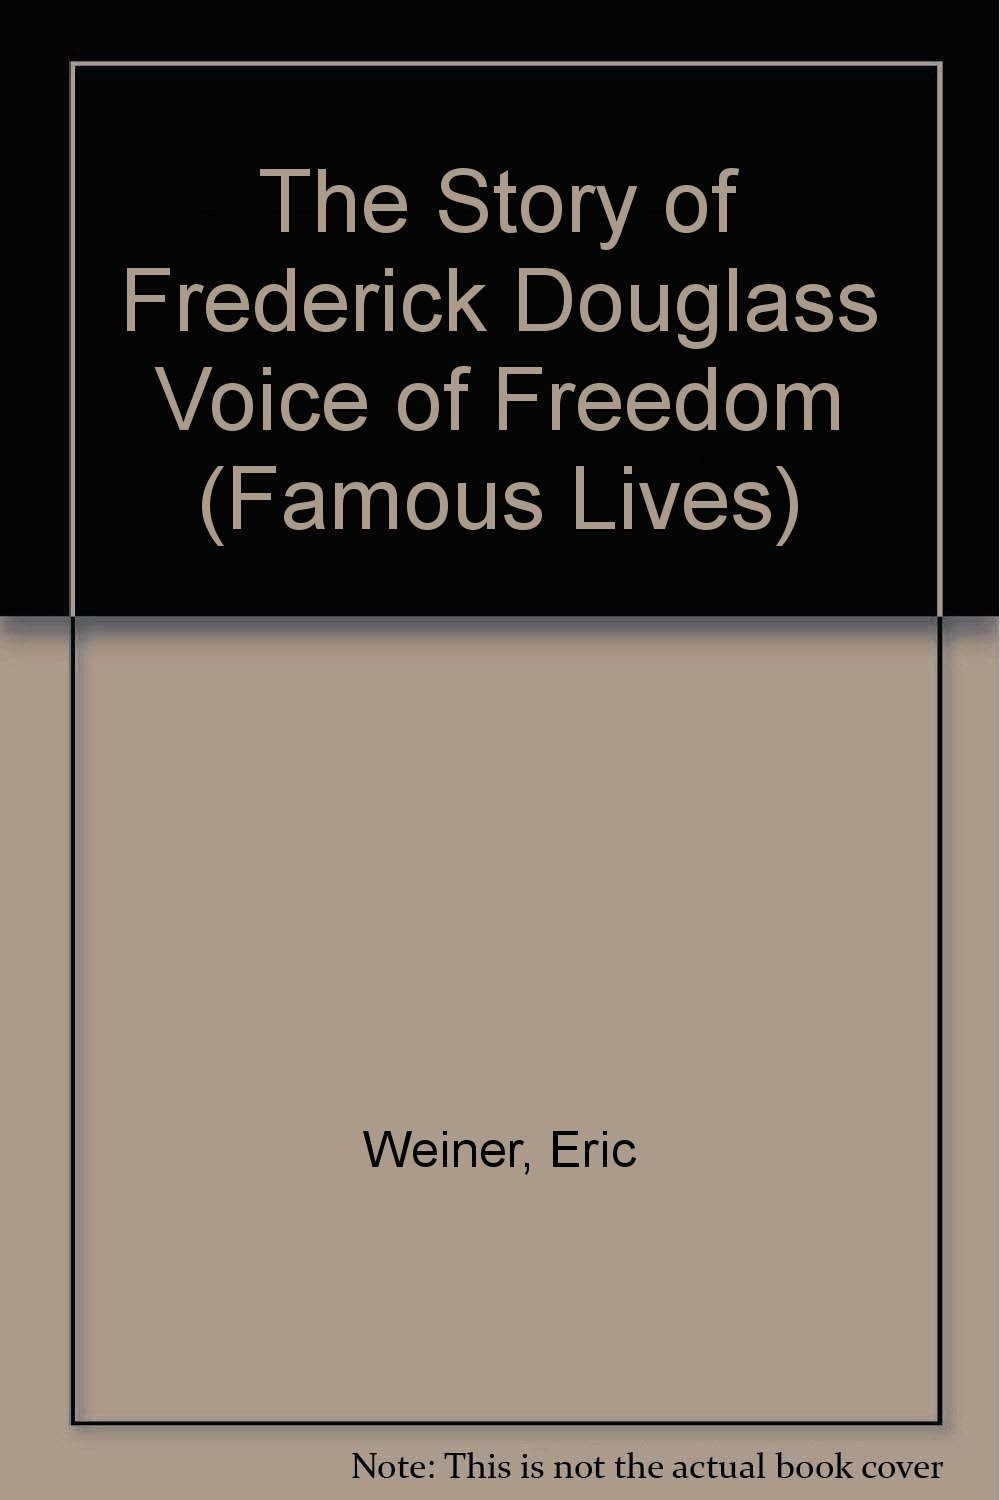 The Story of Frederick Douglass Voice of Freedom (Famous Lives)